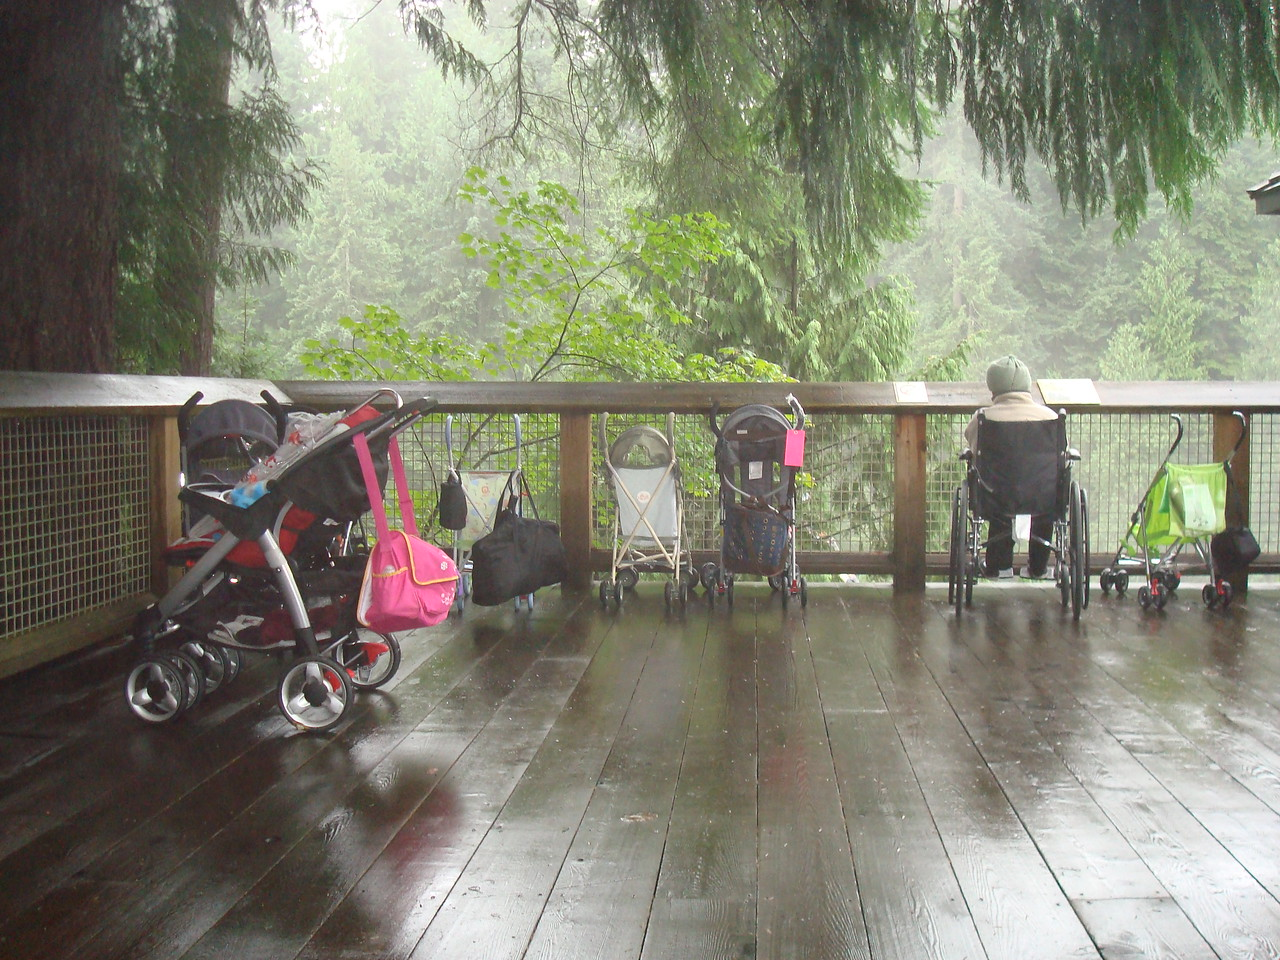 At Capilano Bridge. Strollers and wheelchairs aren't allowed on the bridge, so people leave them (and one poor grandma) at the start.